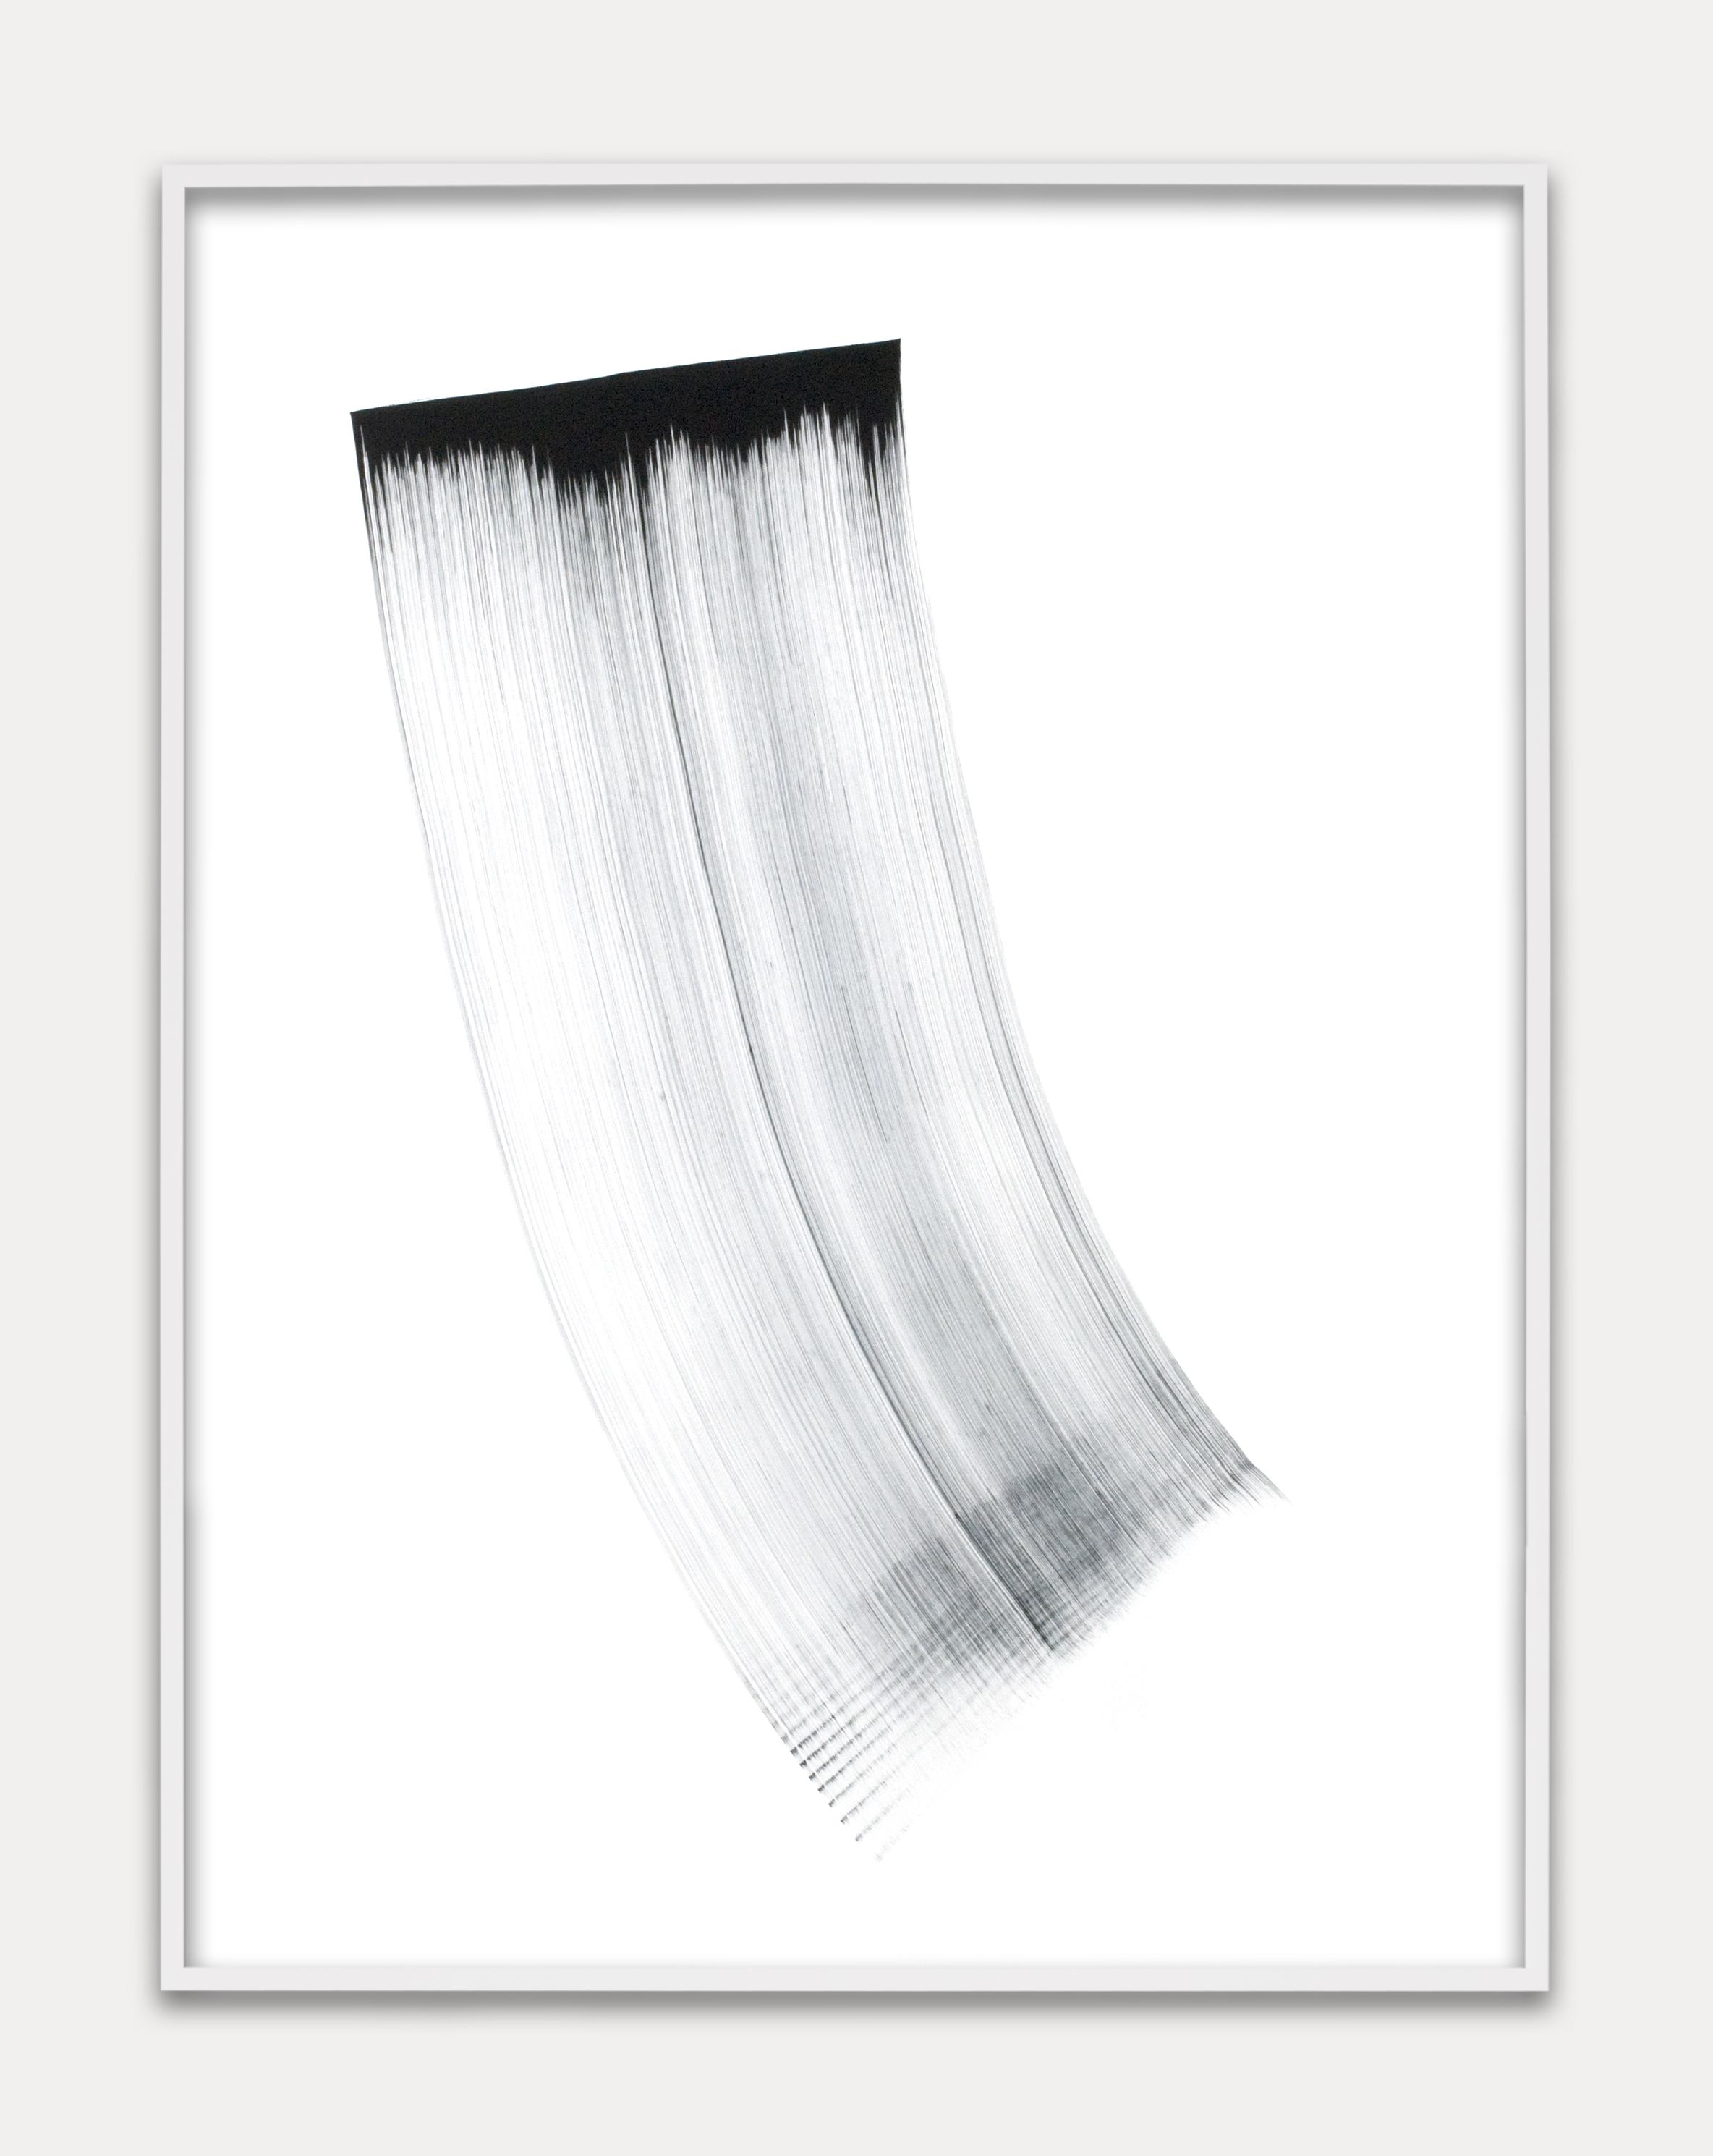 Replacement Ink for Epson Printers (Black 446009) on Epson Premium Glossy Paper, 2014 unique archival pigment print 153,5 x 113,5 cm - 60 3/8 x 44 5/8 inches (framed)